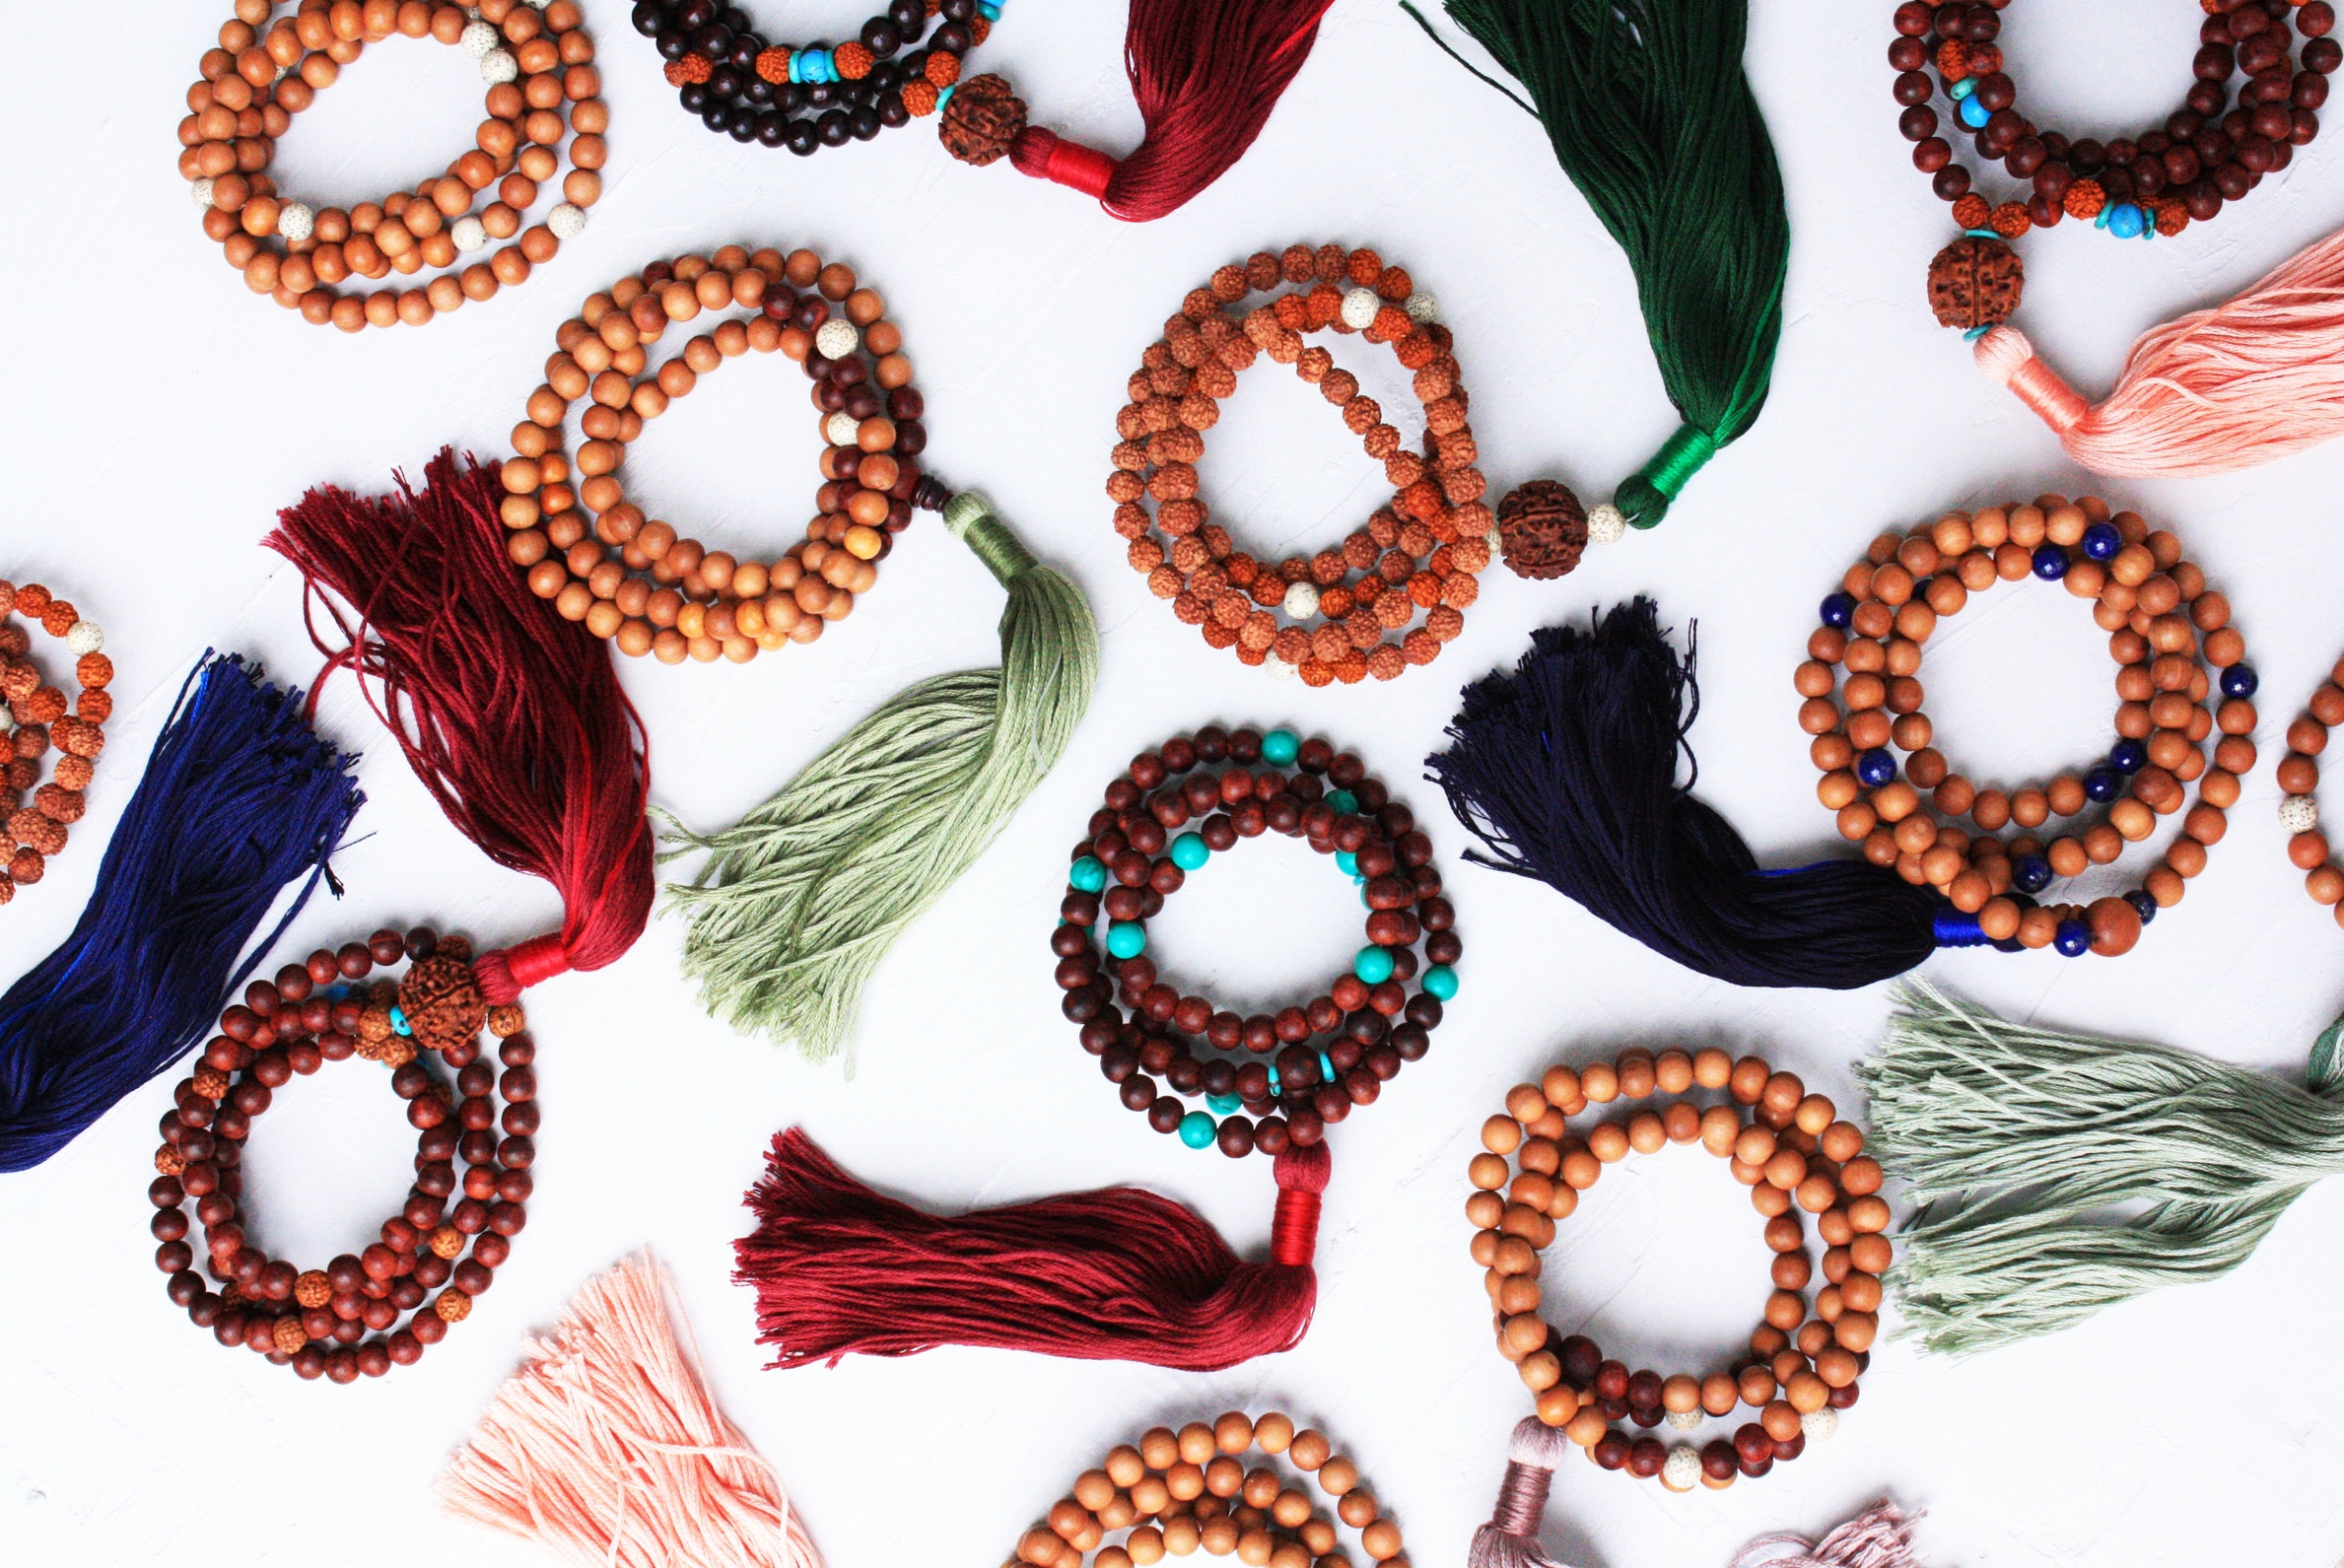 About the Process: Handmade Malas From The Himalayas // Habitation Co.